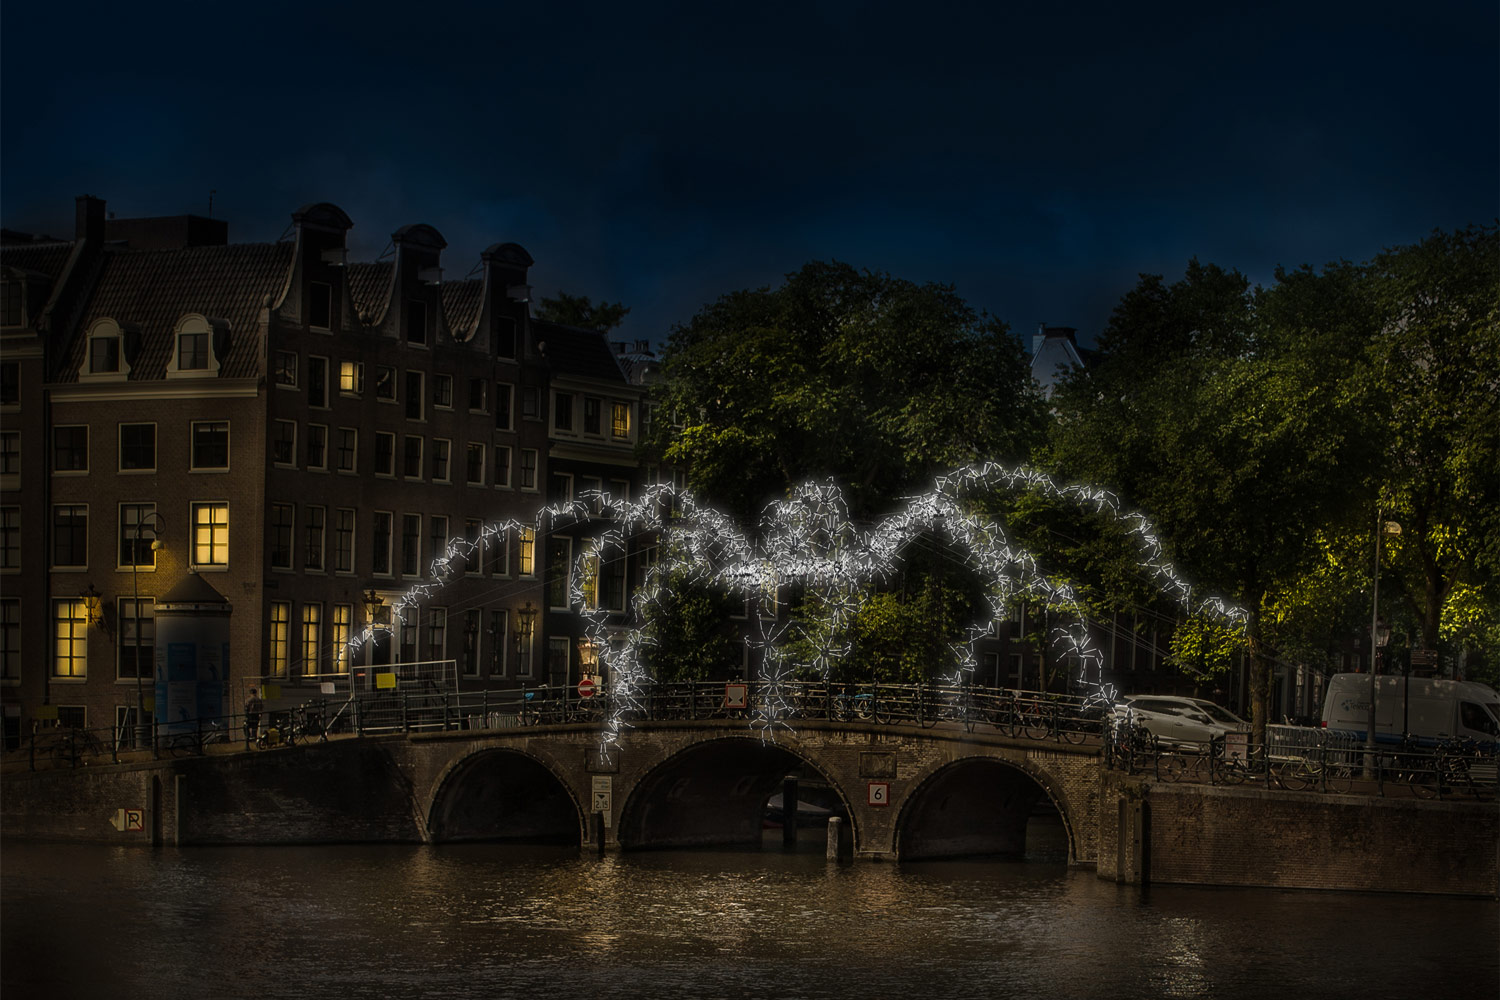 Verlichting Festival Amsterdam Amsterdam Light Festival The Innsider